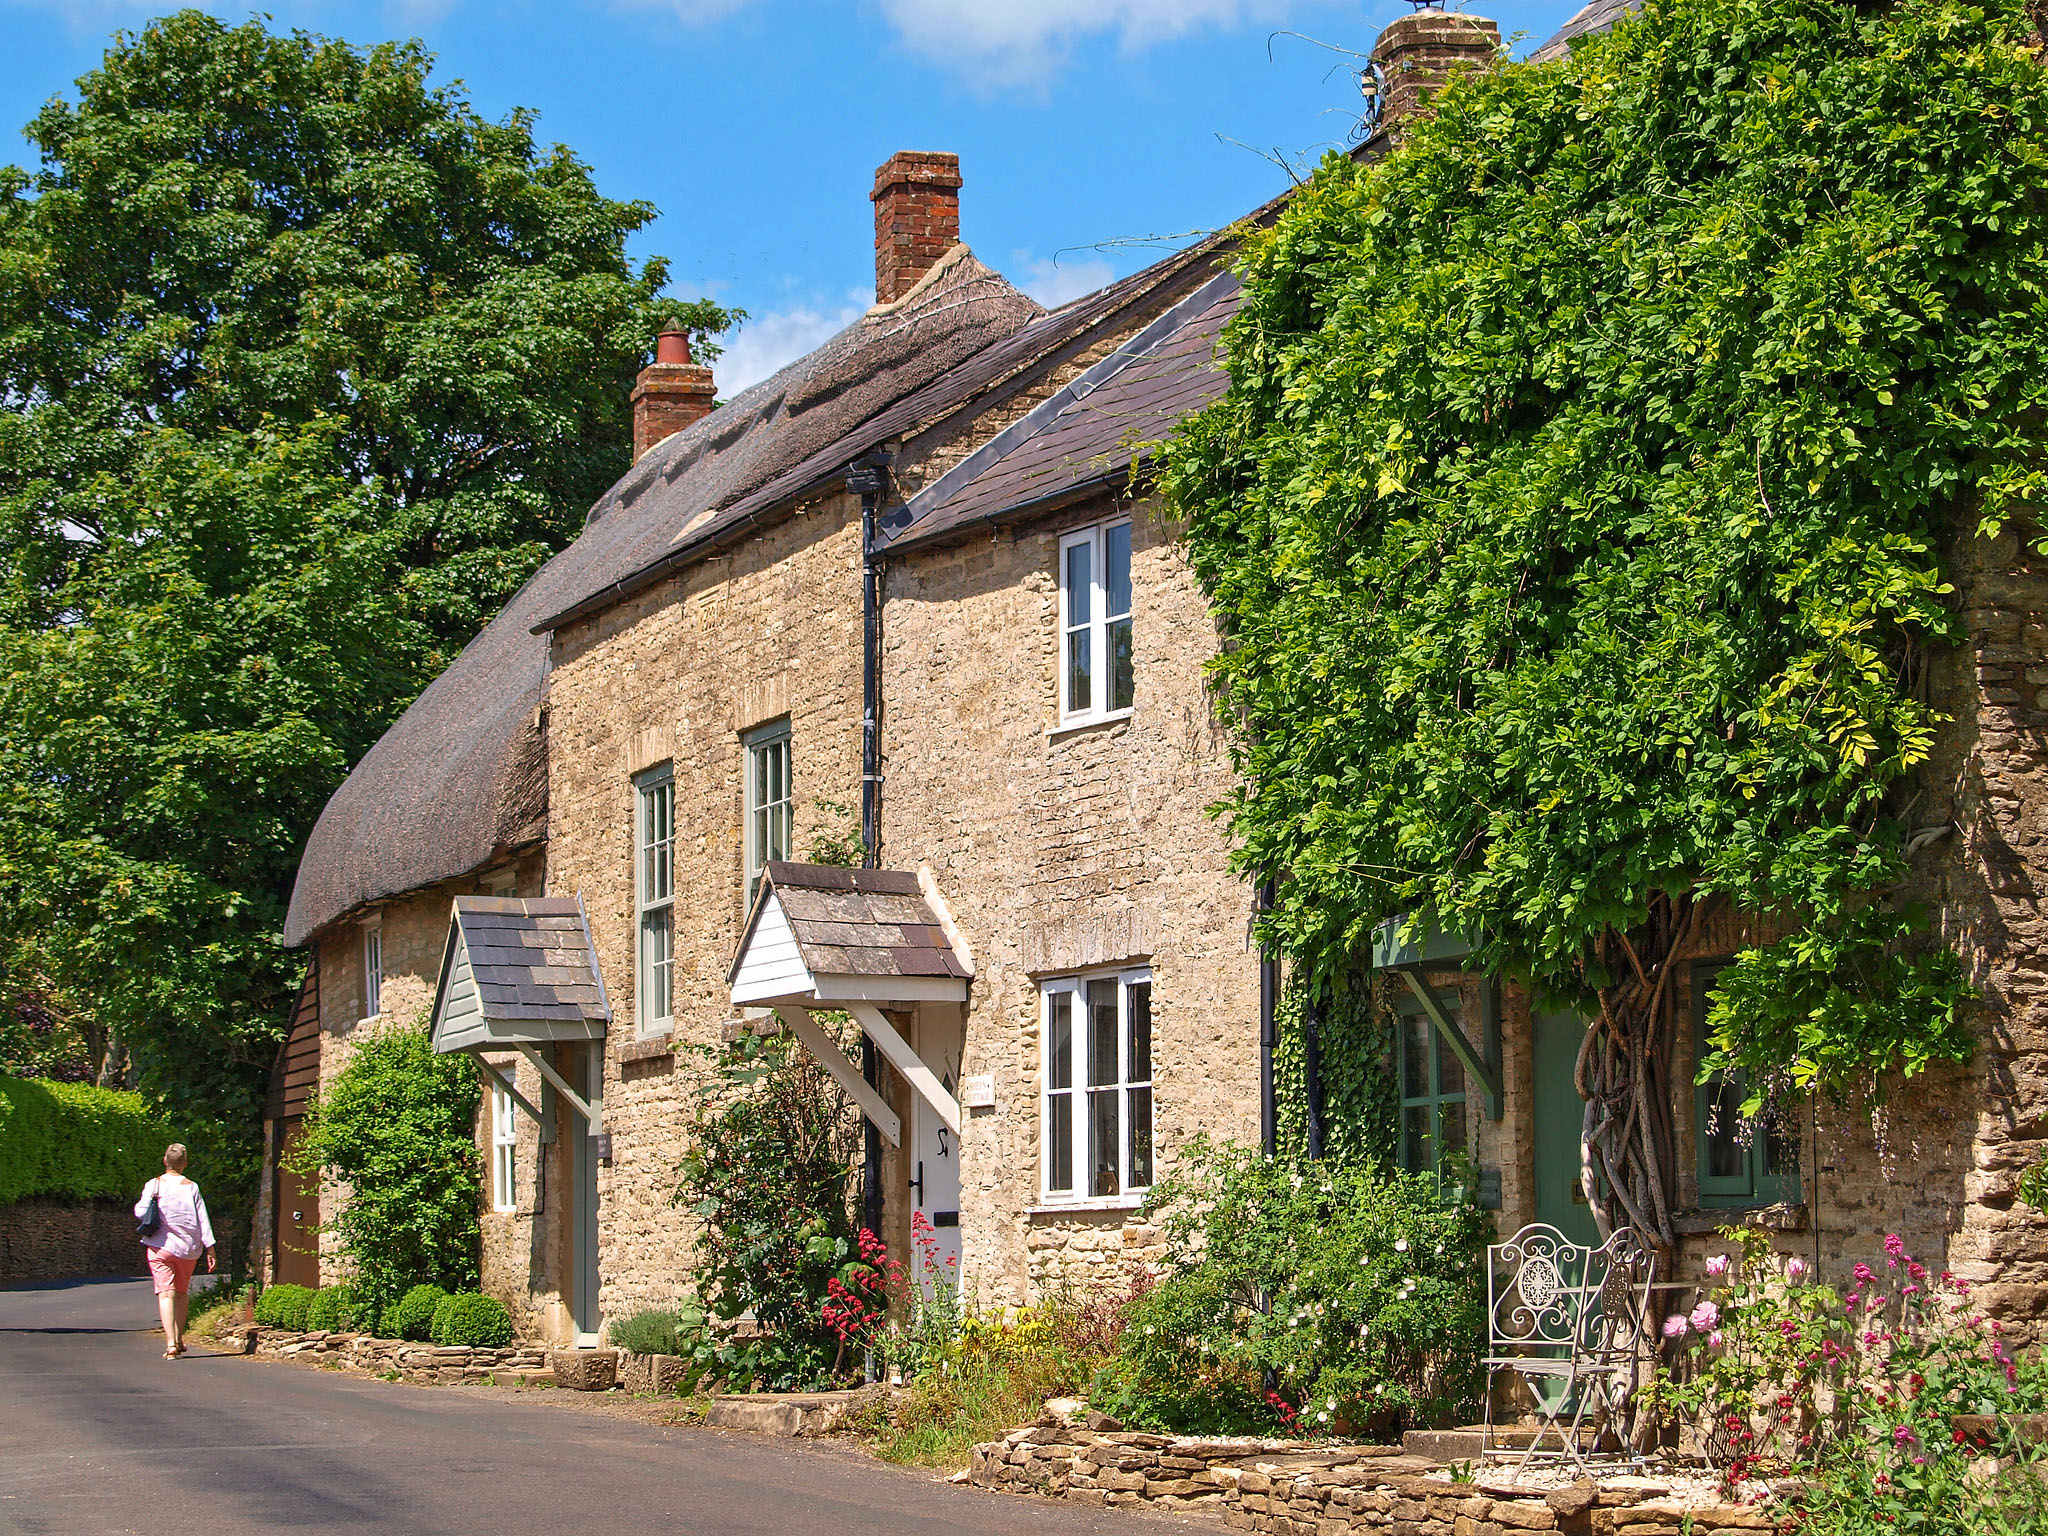 Quiet Great Rollright in the Oxfordshire Cotswolds by Andrew S Brown.jpg